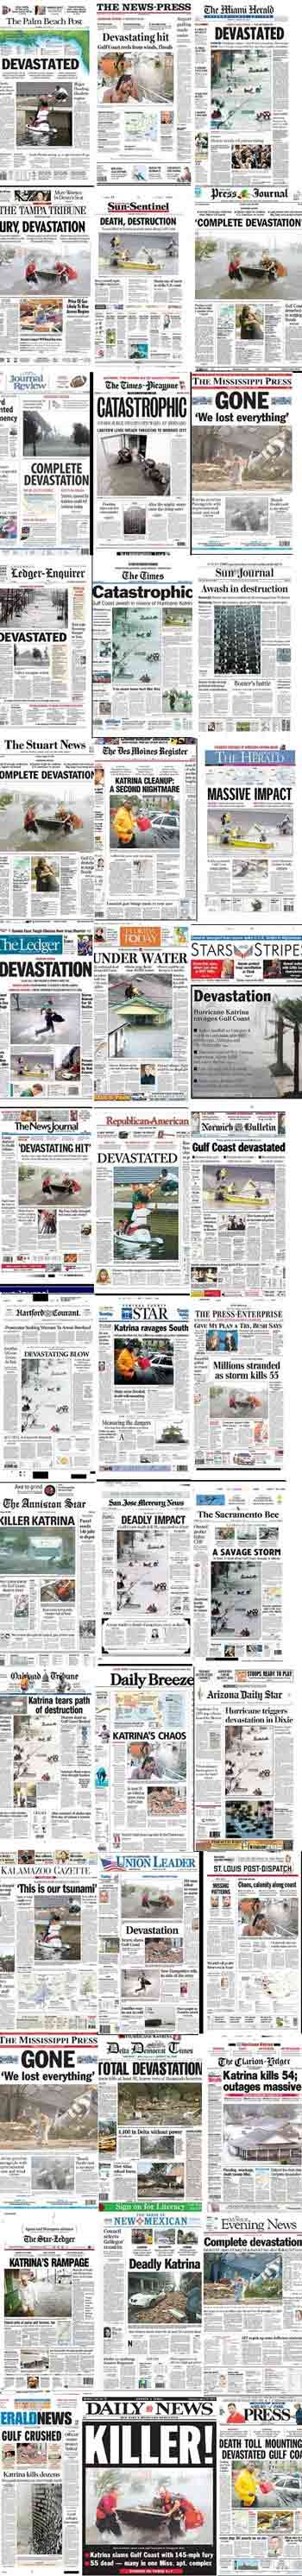 Hurricane Katrina: Timeline of Events: Page Four: This Far ...